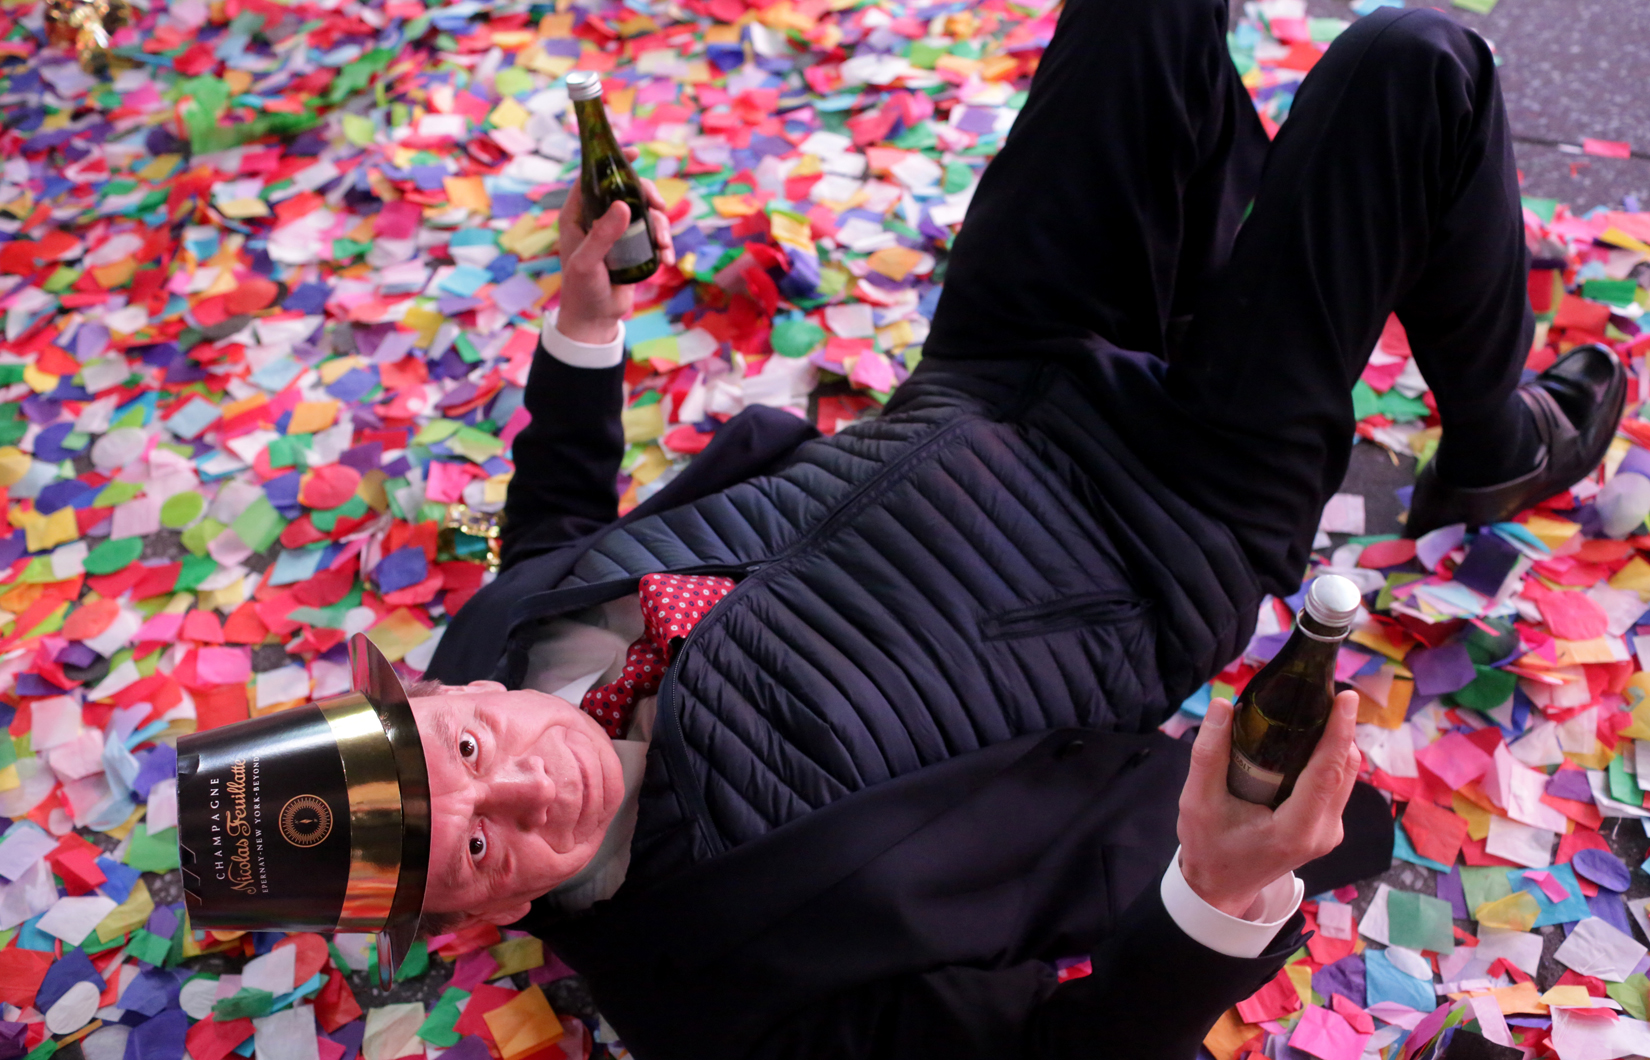 A man rolls around in confetti on New Year's eve in Times Square in New York, NY just after midnight on January 01, 2017.